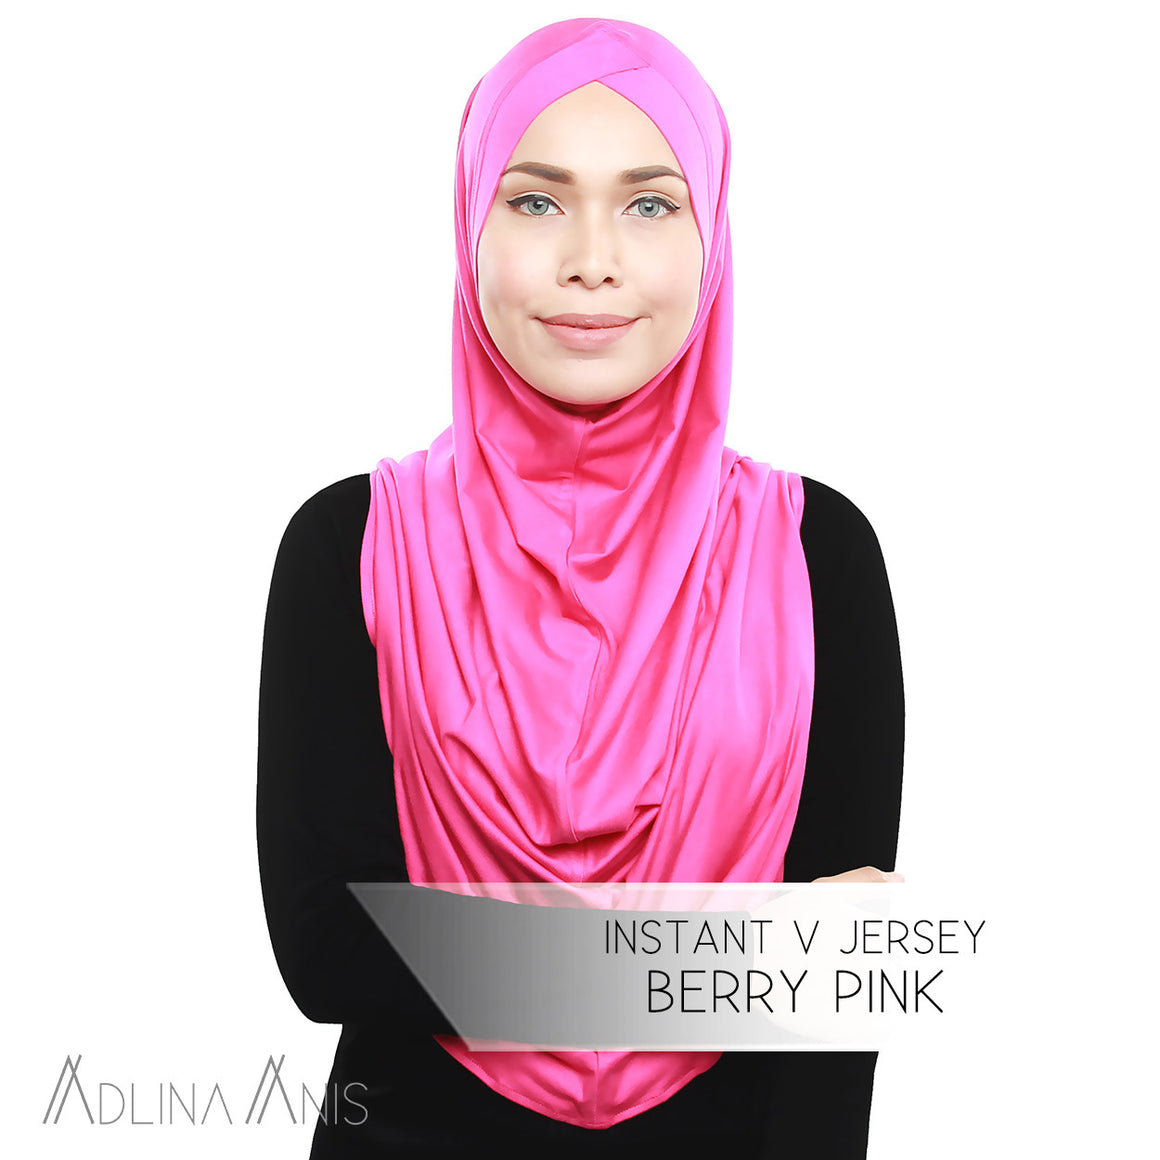 Instant V Jersey - Berry Pink